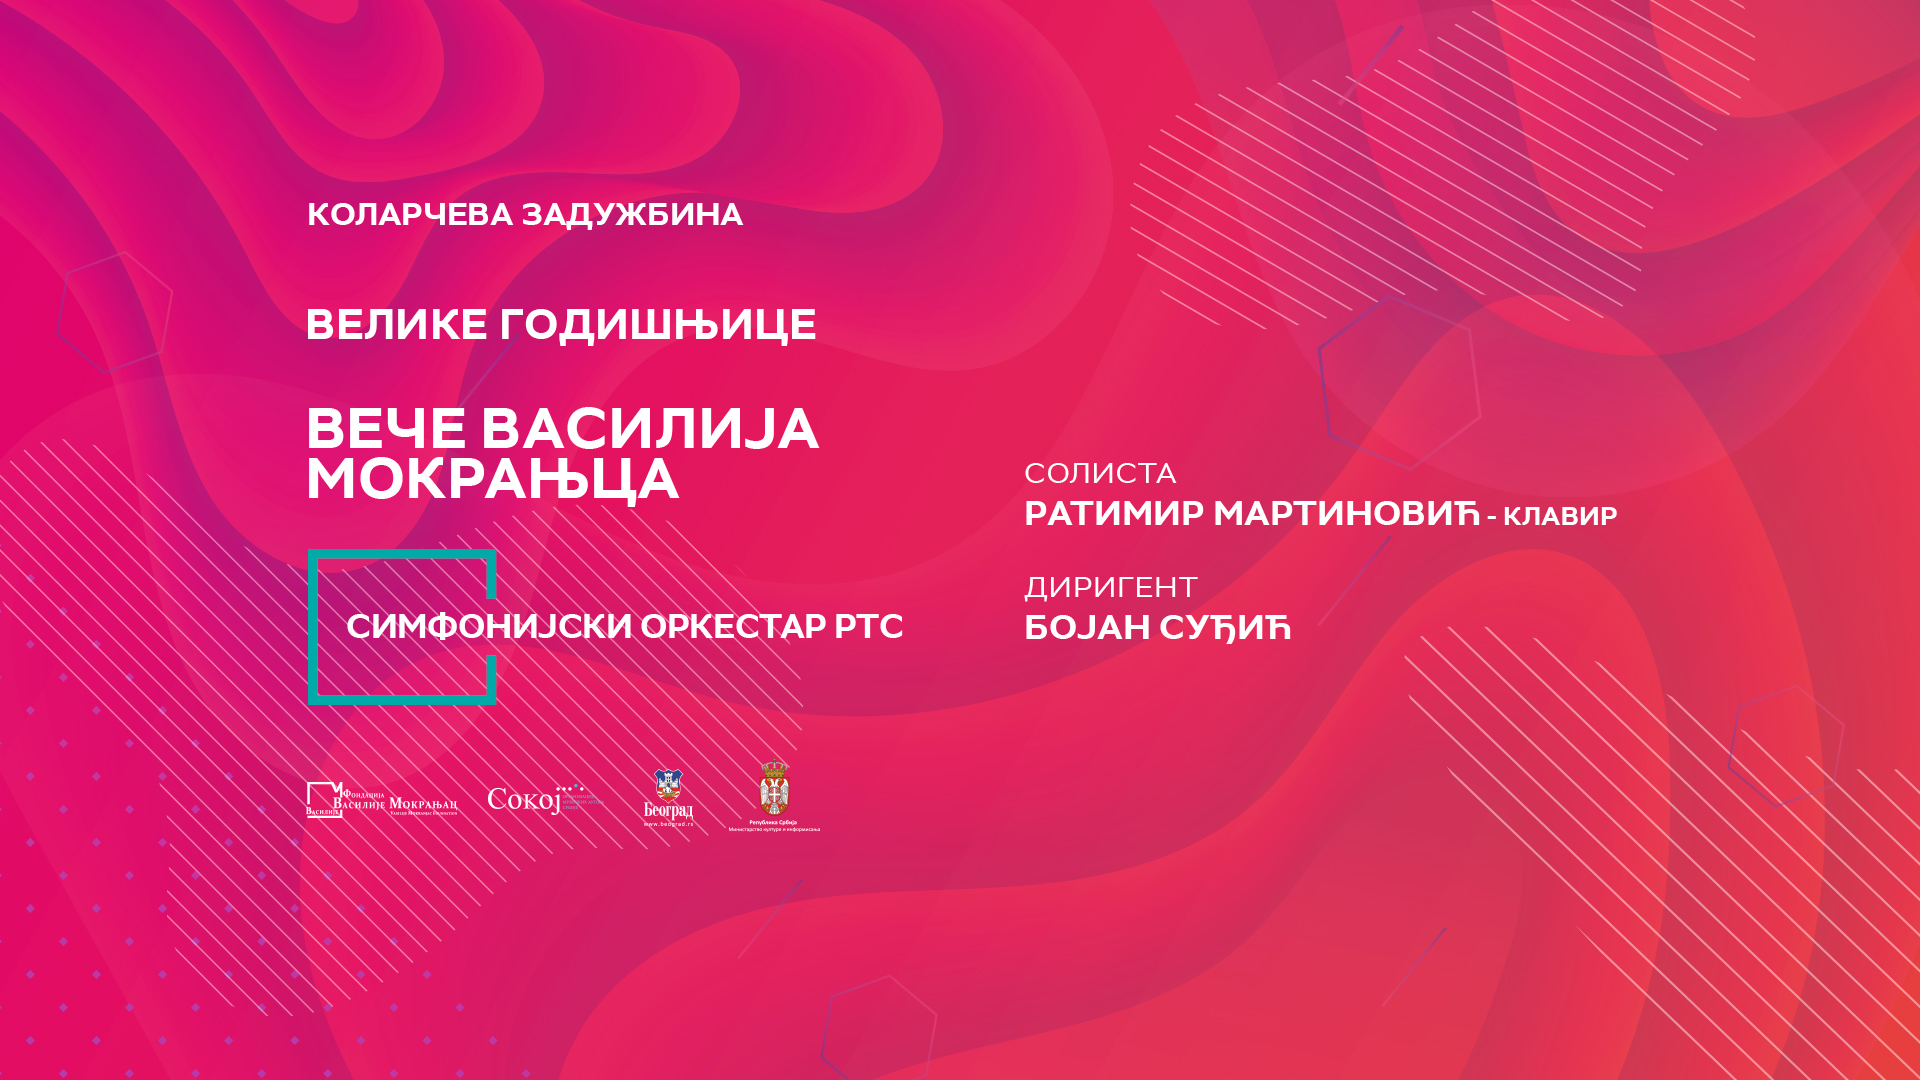 """AN EVENING WITH VASILIJE MOKRANJAC WITHIN THE """"GREAT ANNIVERSARIES"""" SERIES"""